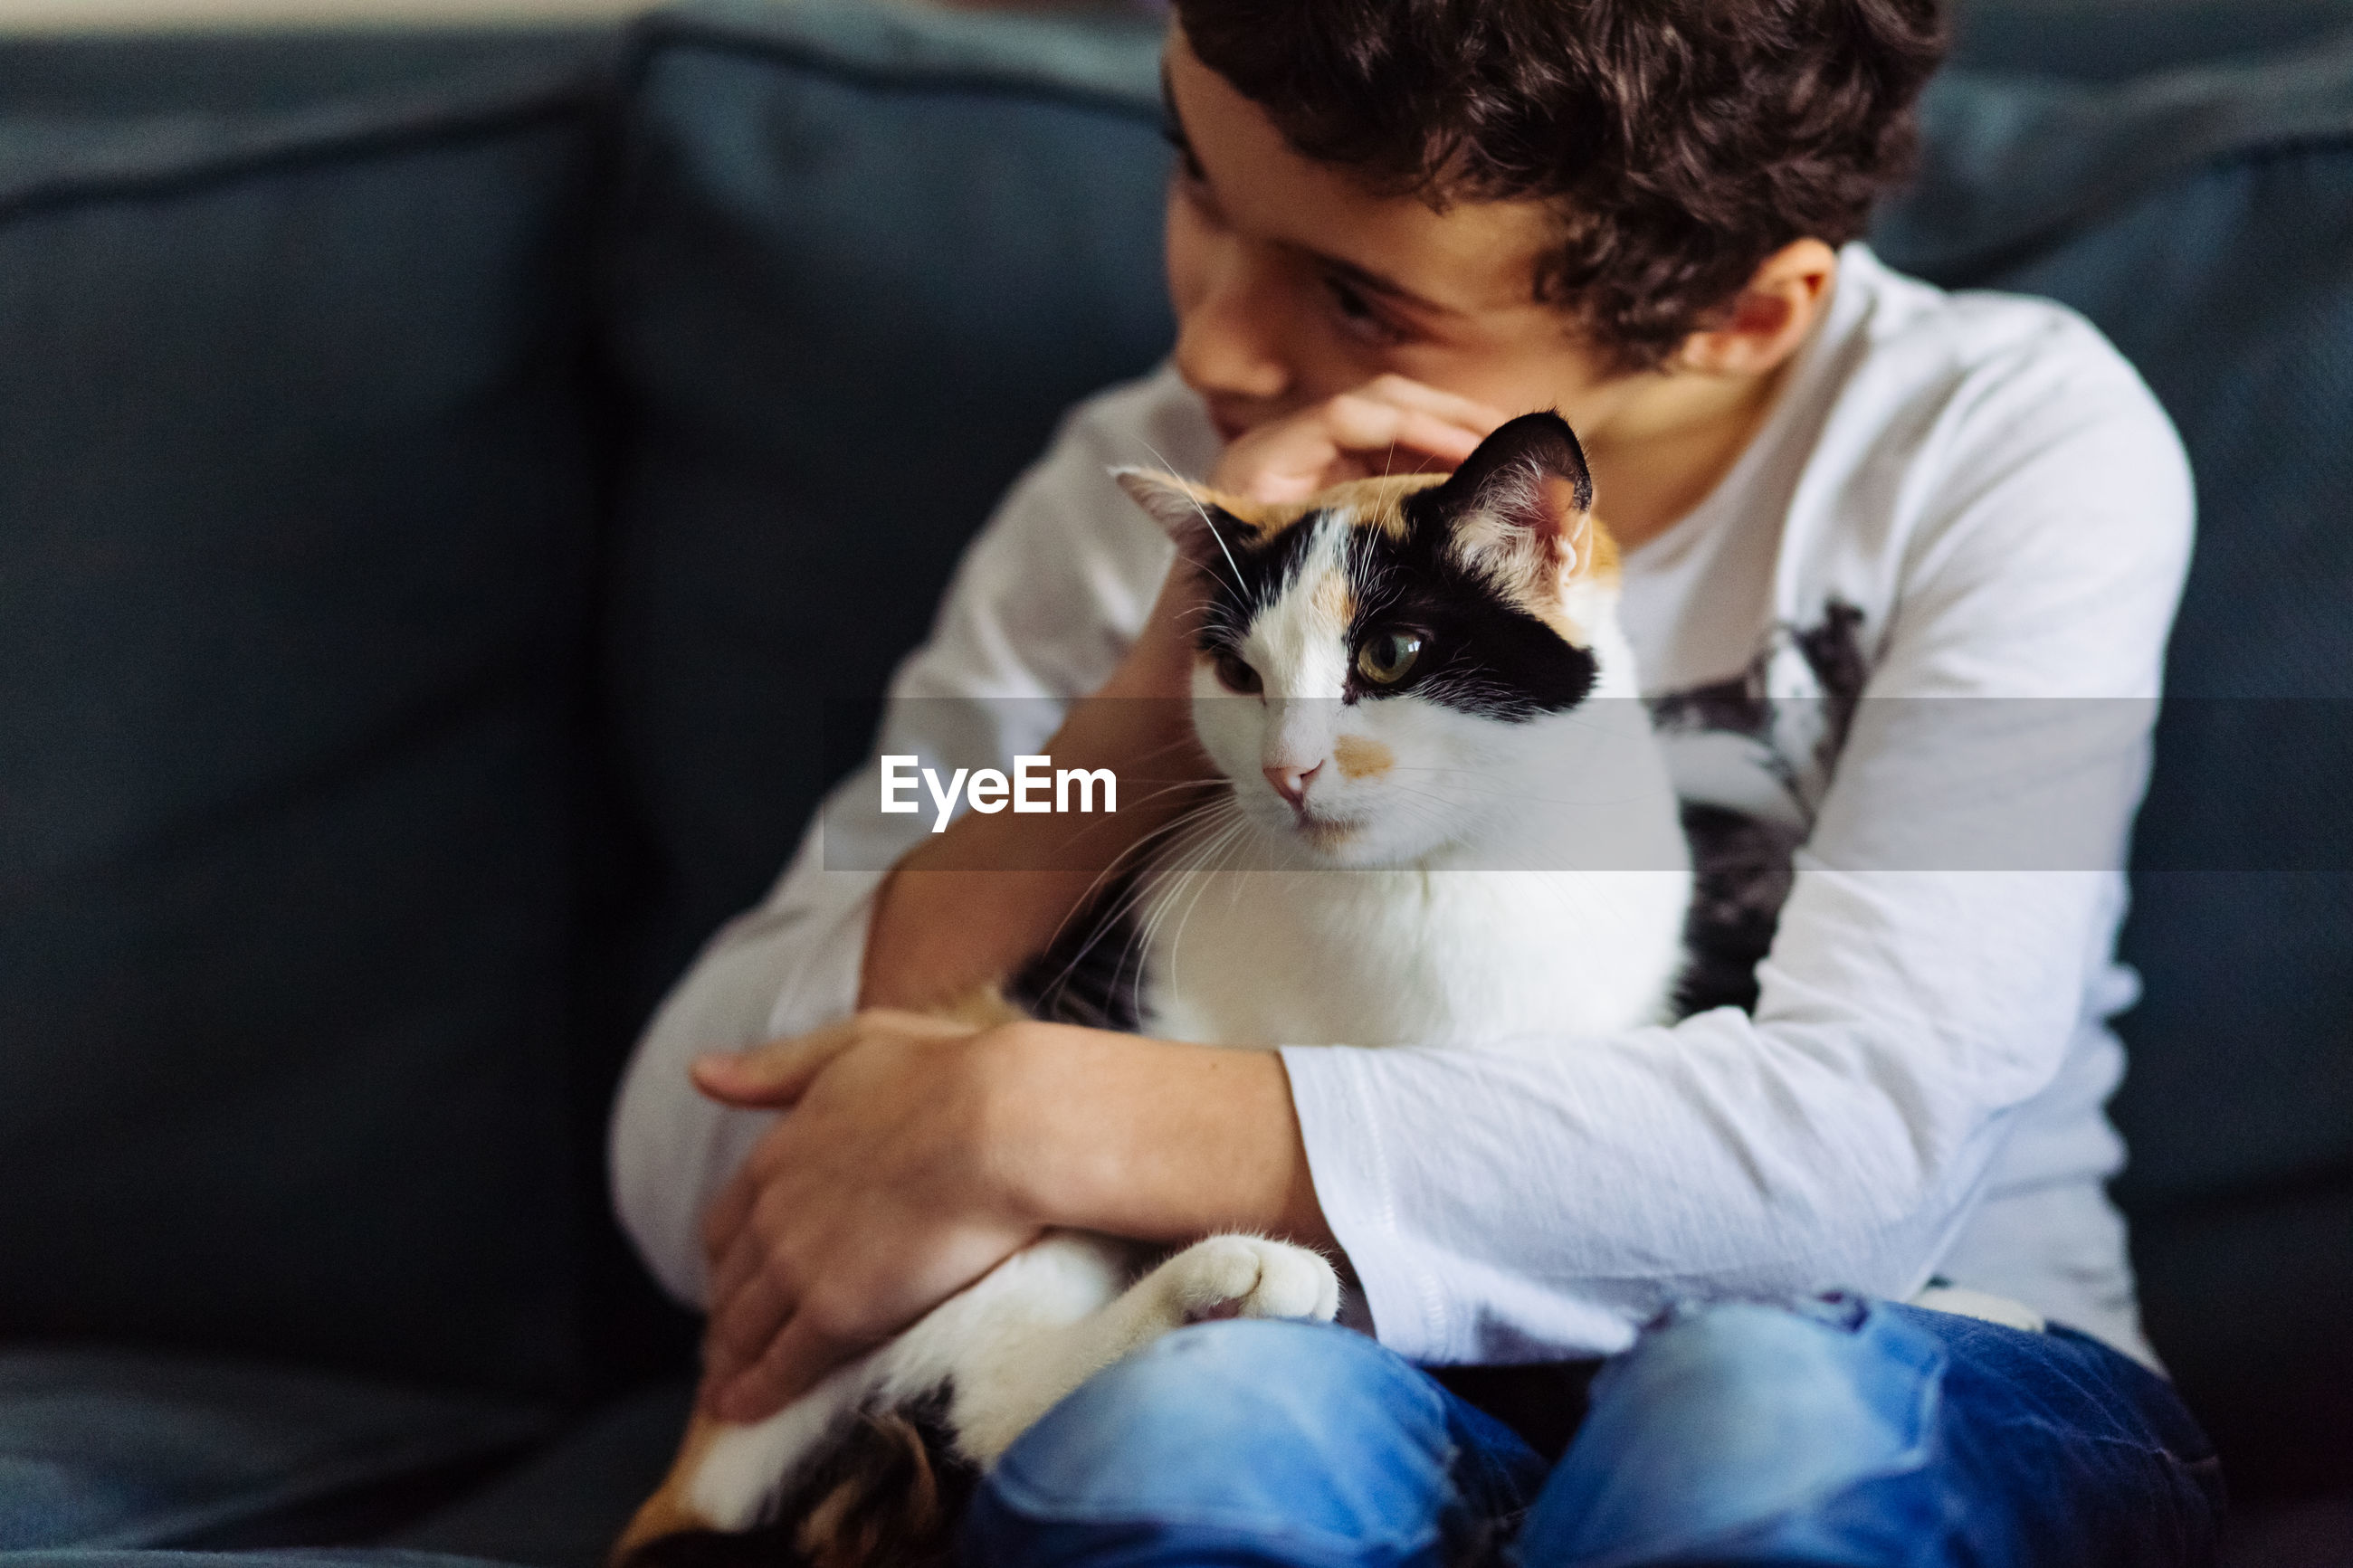 Young man sitting with cat